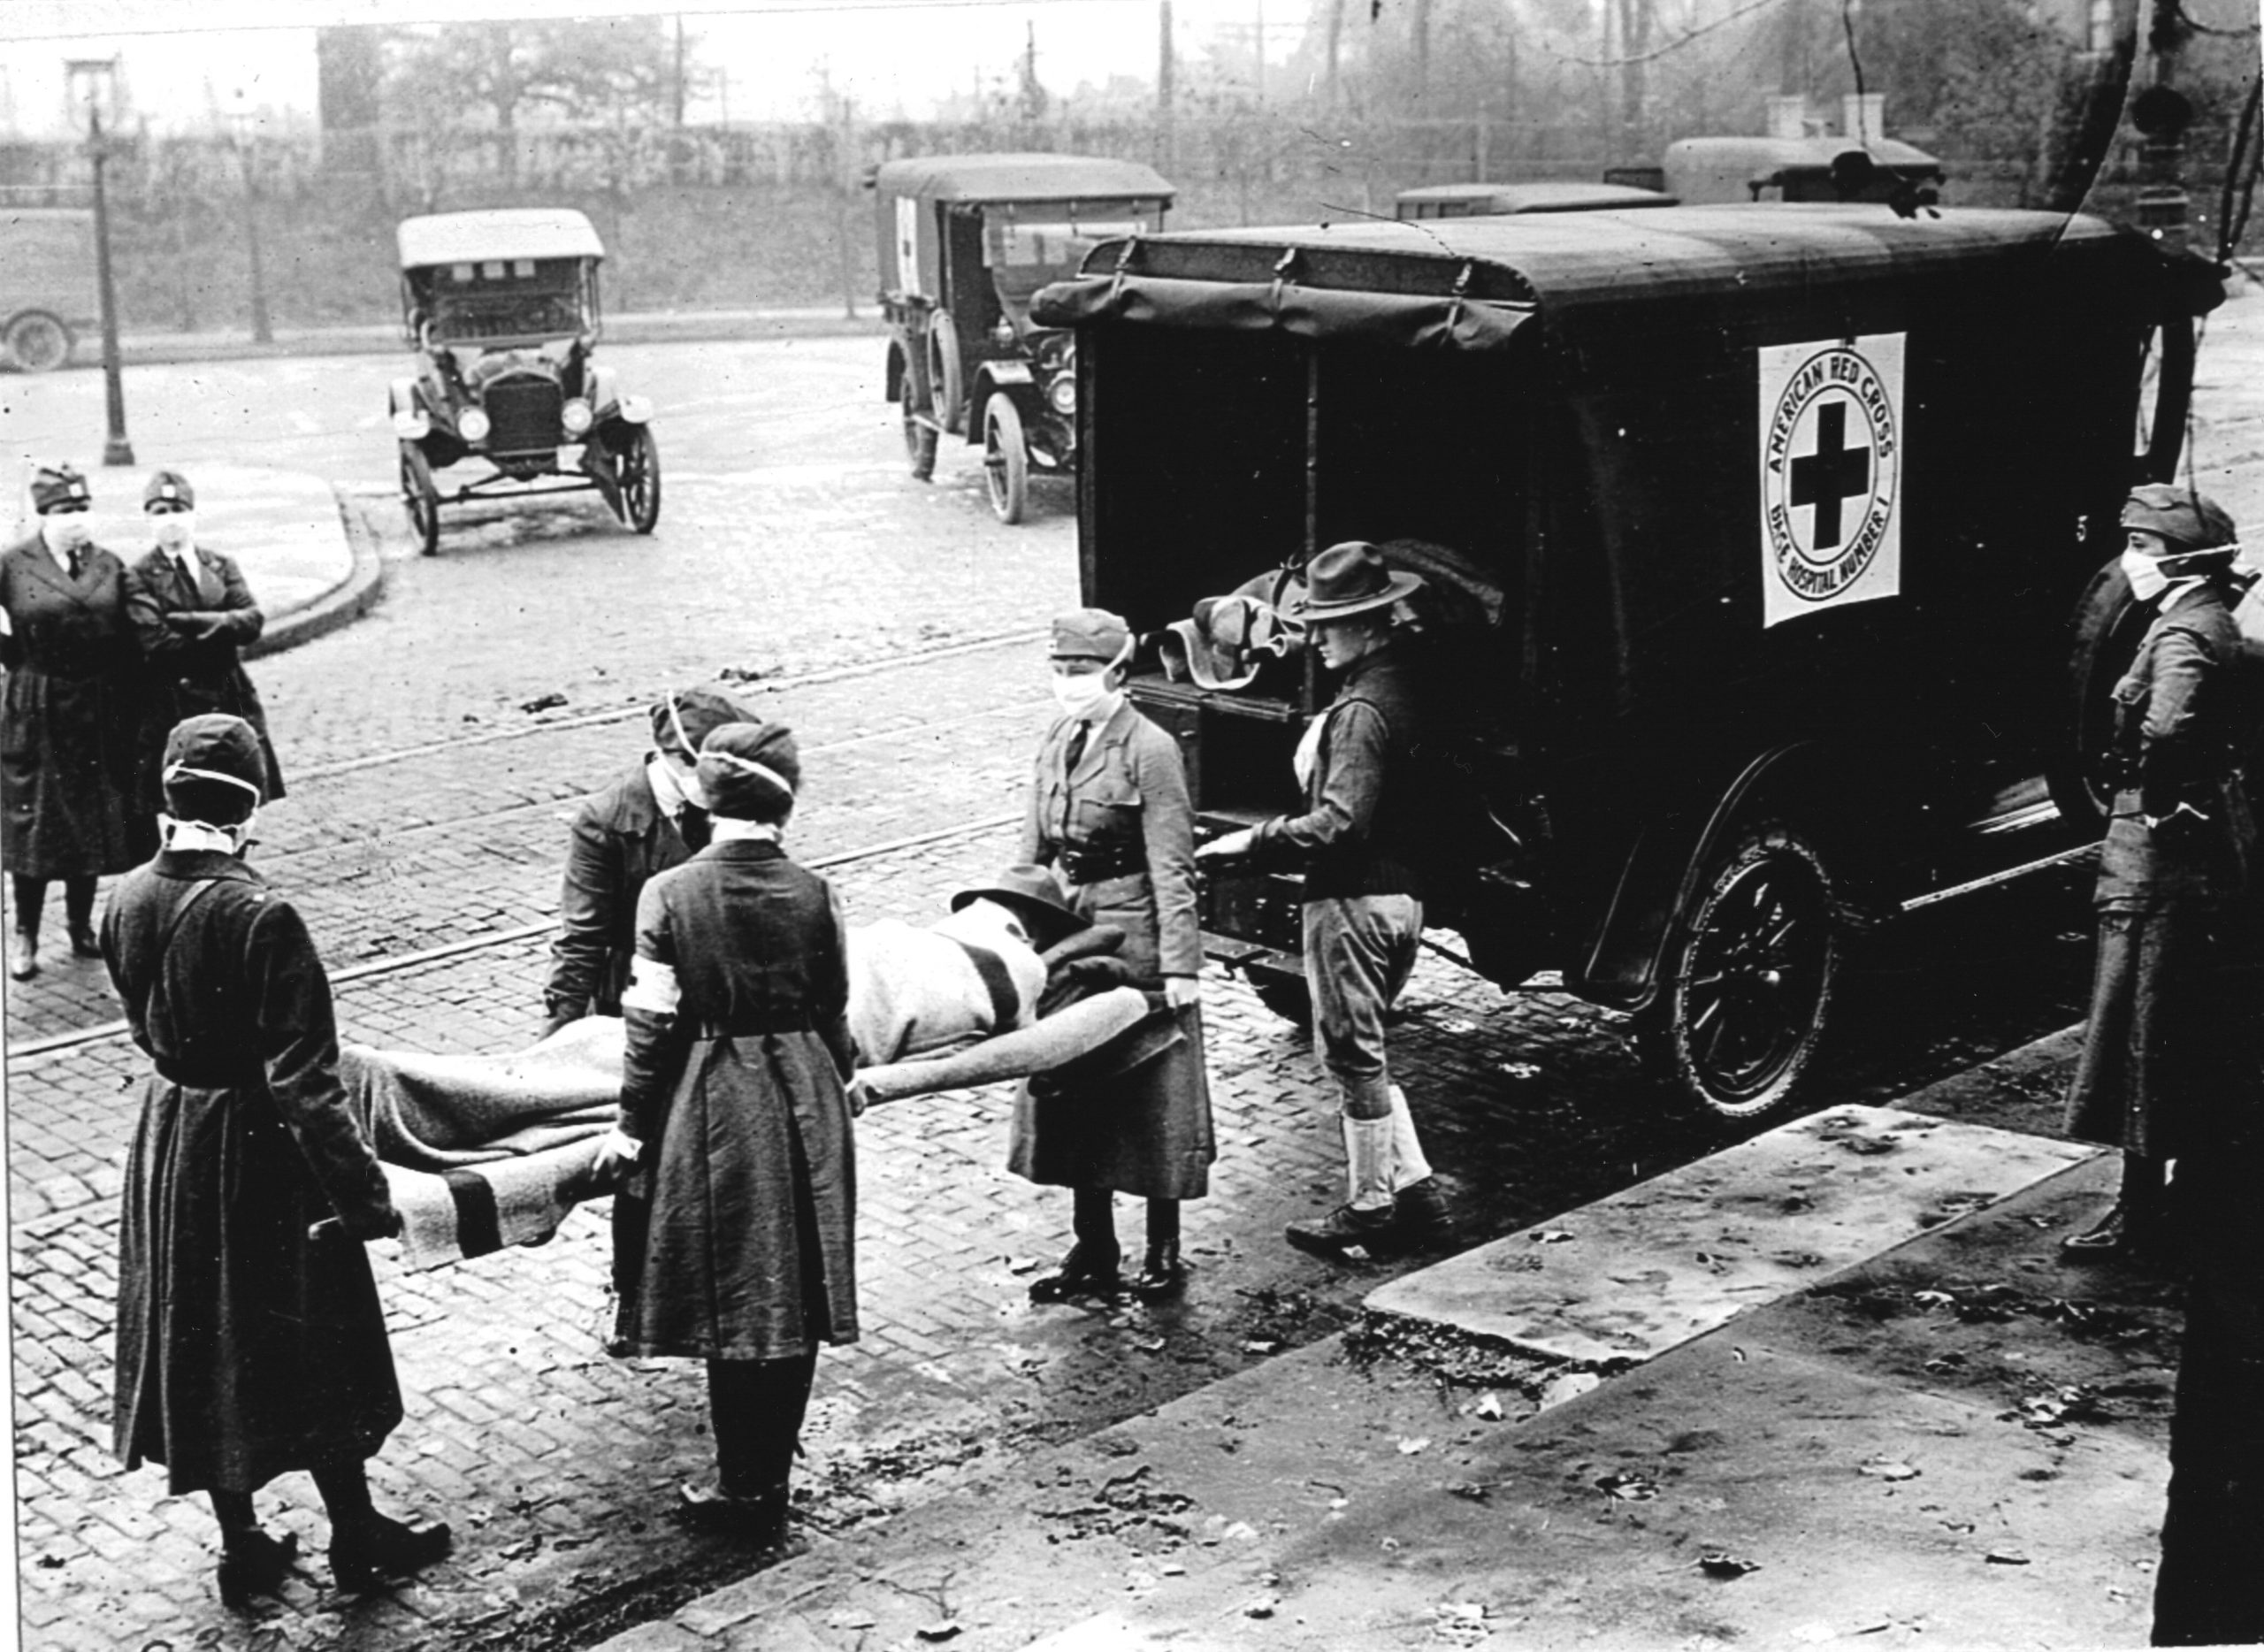 COVID-19 does not affect the first pandemic too different minorities. Here's what we can learn from the flu of 1918